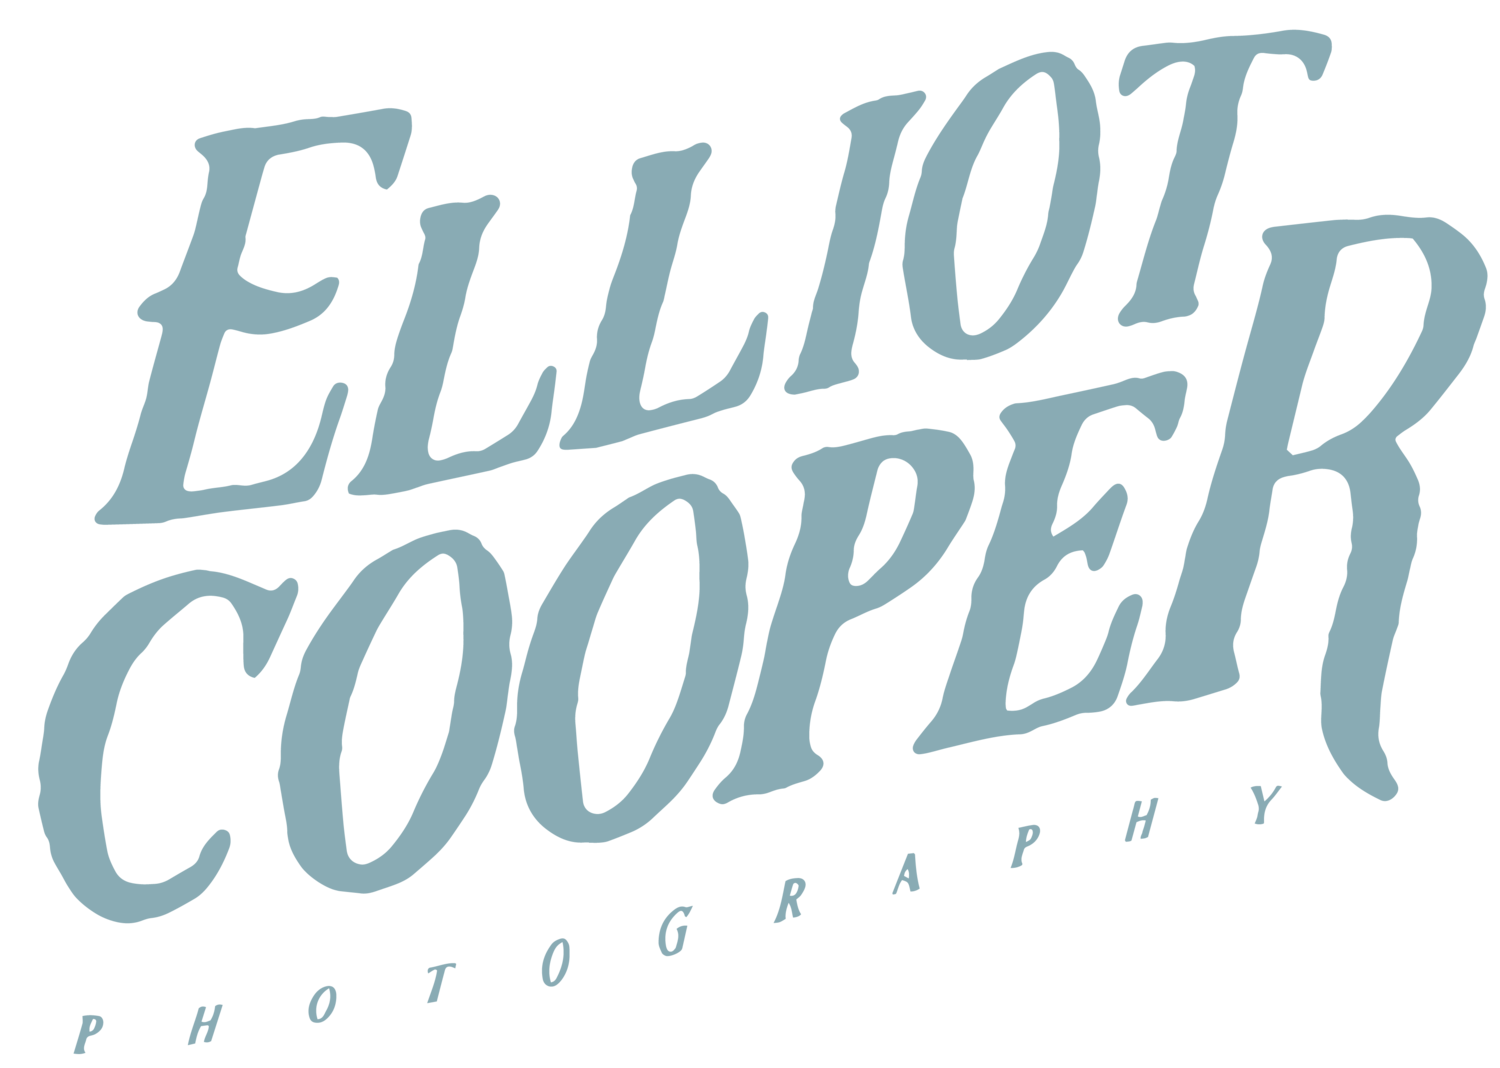 Elliot Cooper Photography